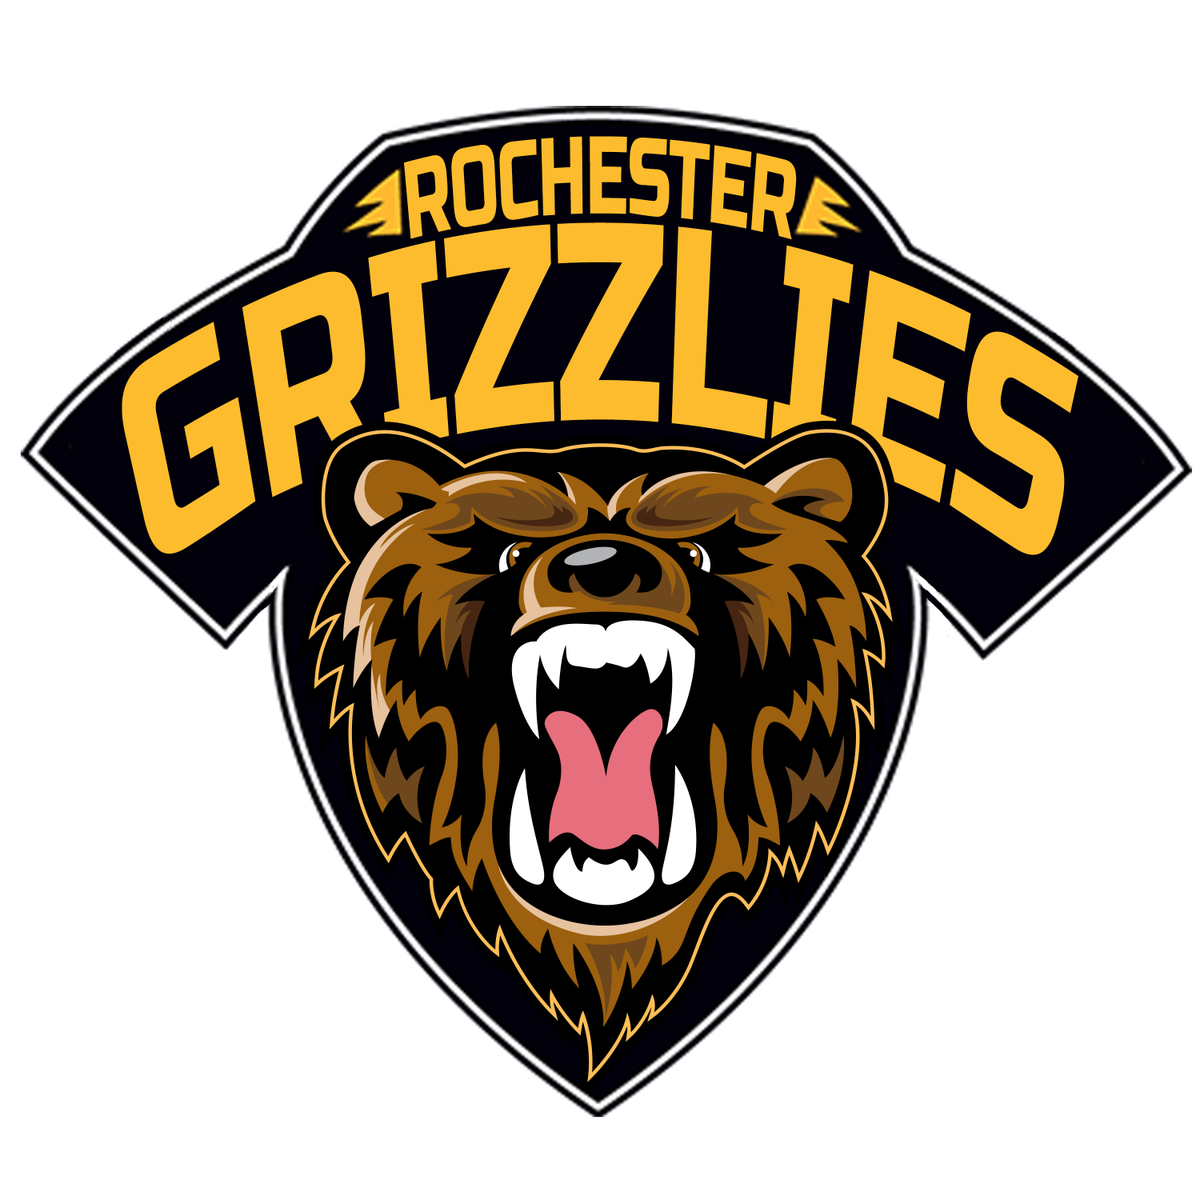 Clipart grizzlies baseball logo image royalty free Junior hockey: Grizzlies first draft yields familiar names | Local ... image royalty free